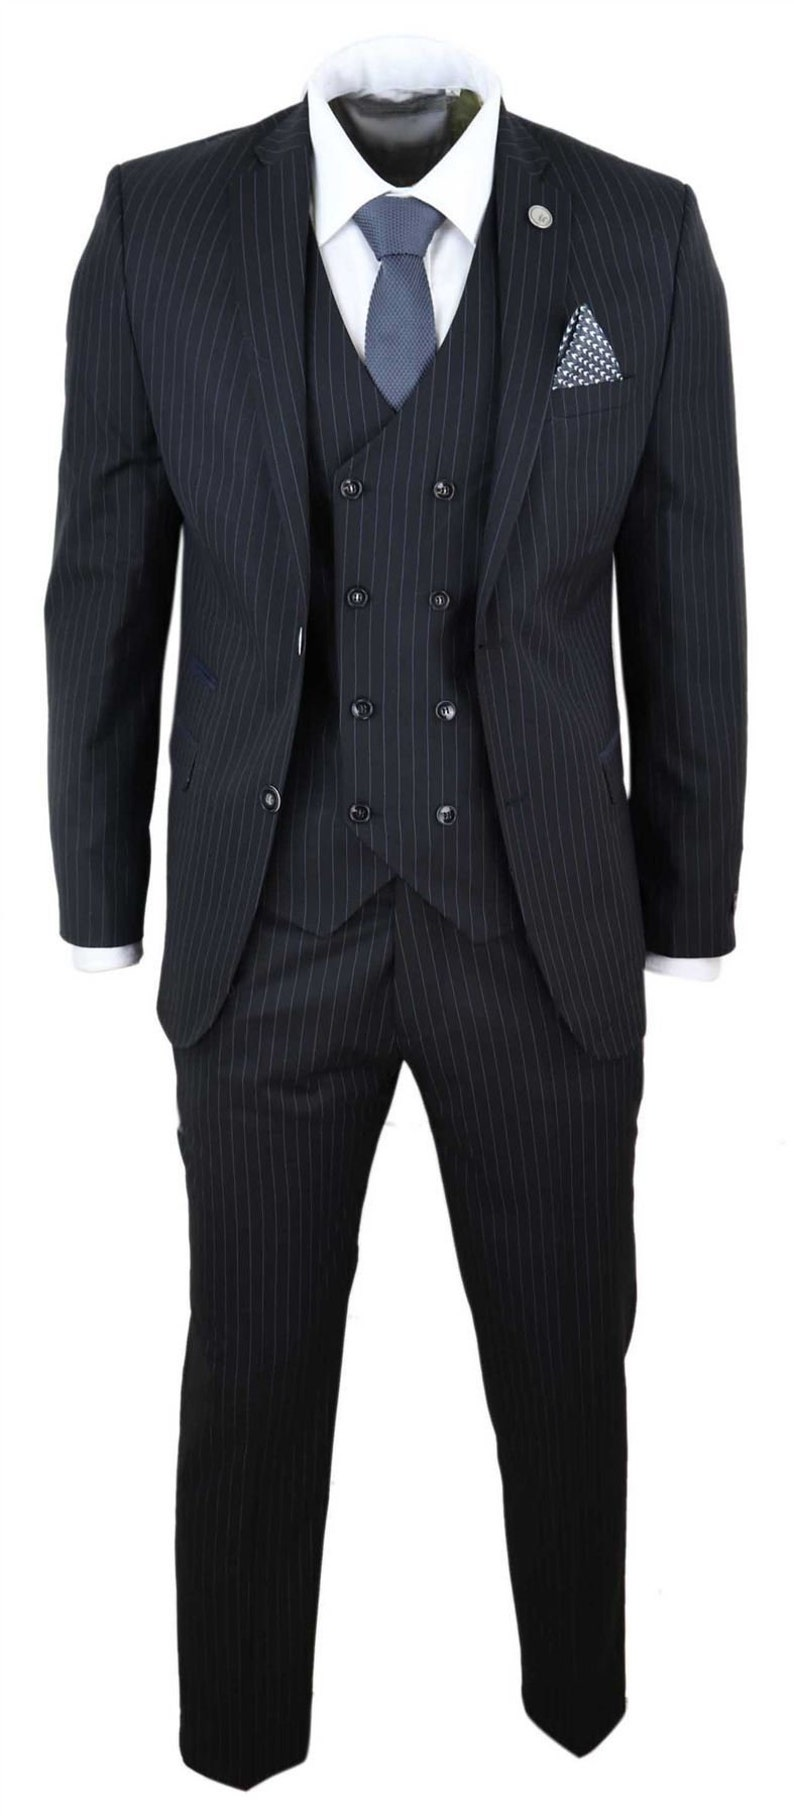 1920s Mens Suits   Gatsby, Gangster, Peaky Blinders     Mens 3 piece suit gatsby 1920s  gangster pinstripe tailored fit $180.33 AT vintagedancer.com